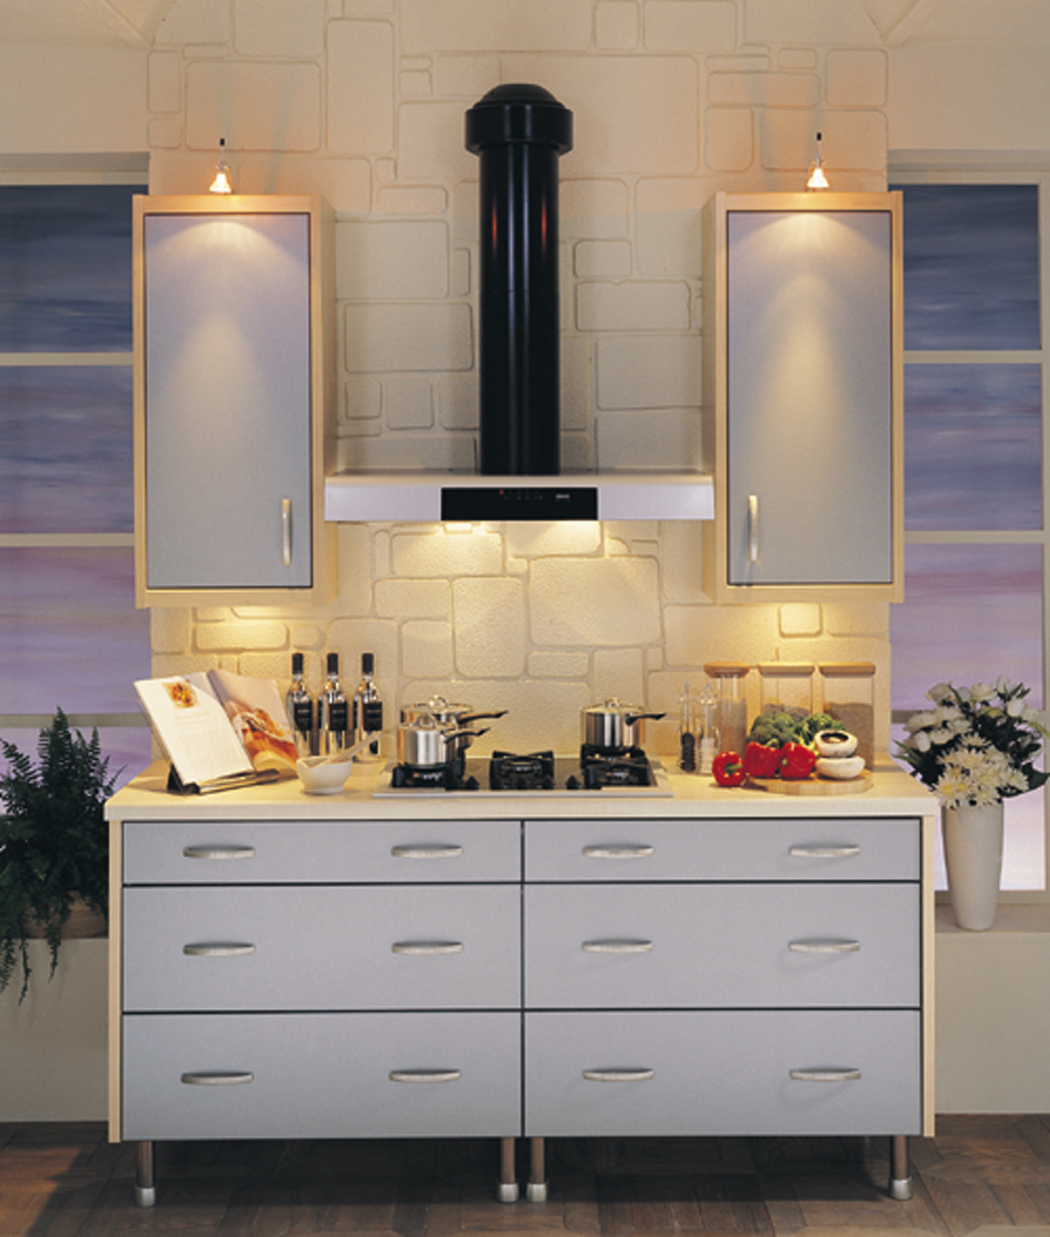 Devon kitchens kitchenworld exeter tempo titanium kitchen for Kitchen design exeter